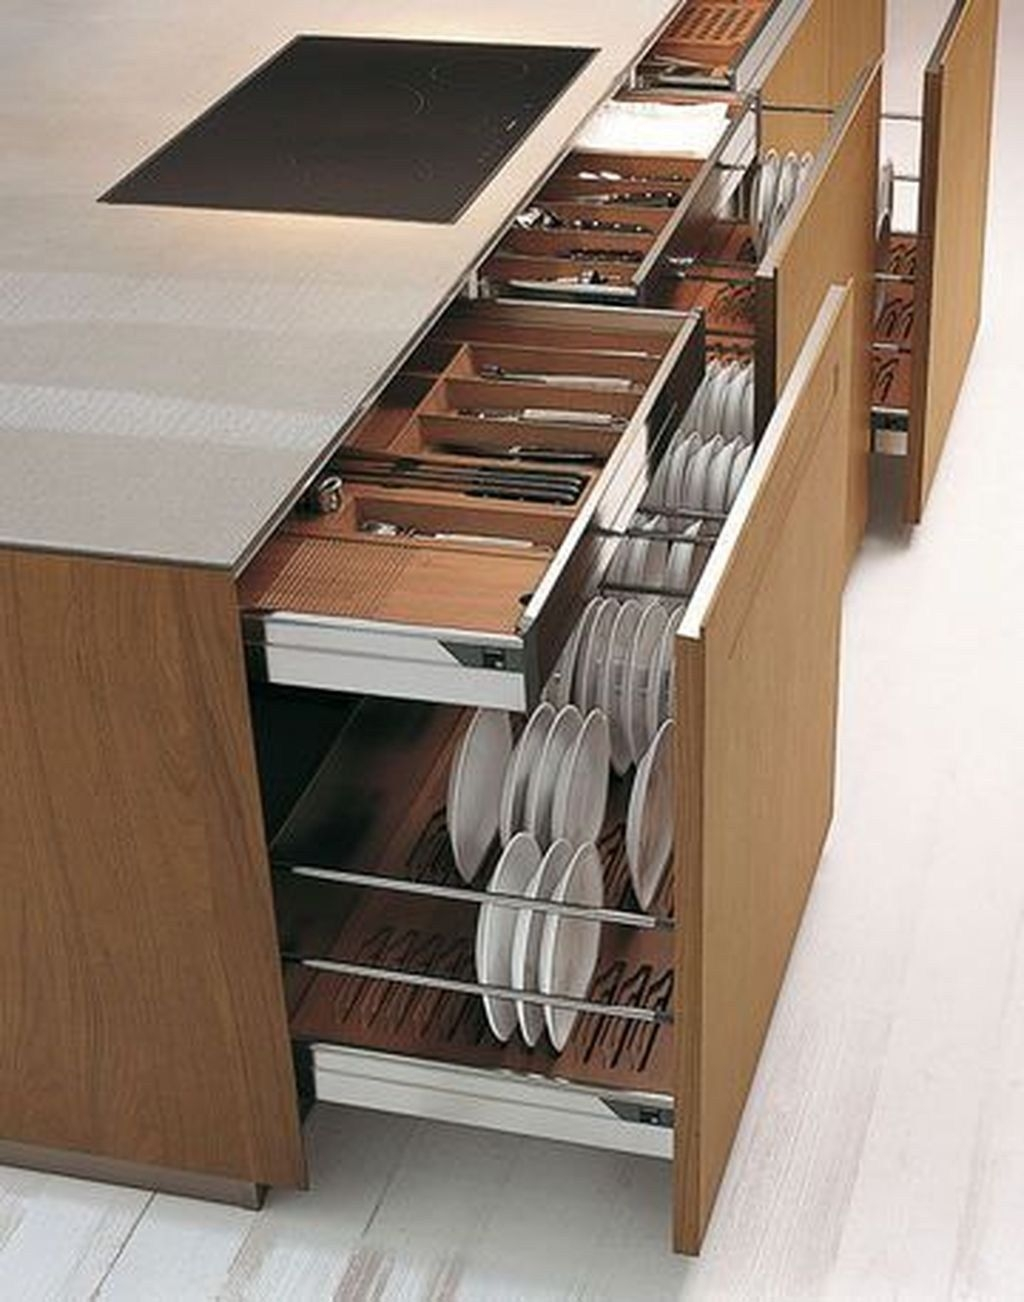 Simple Kitchen Remodeling Ideas On A Budget32